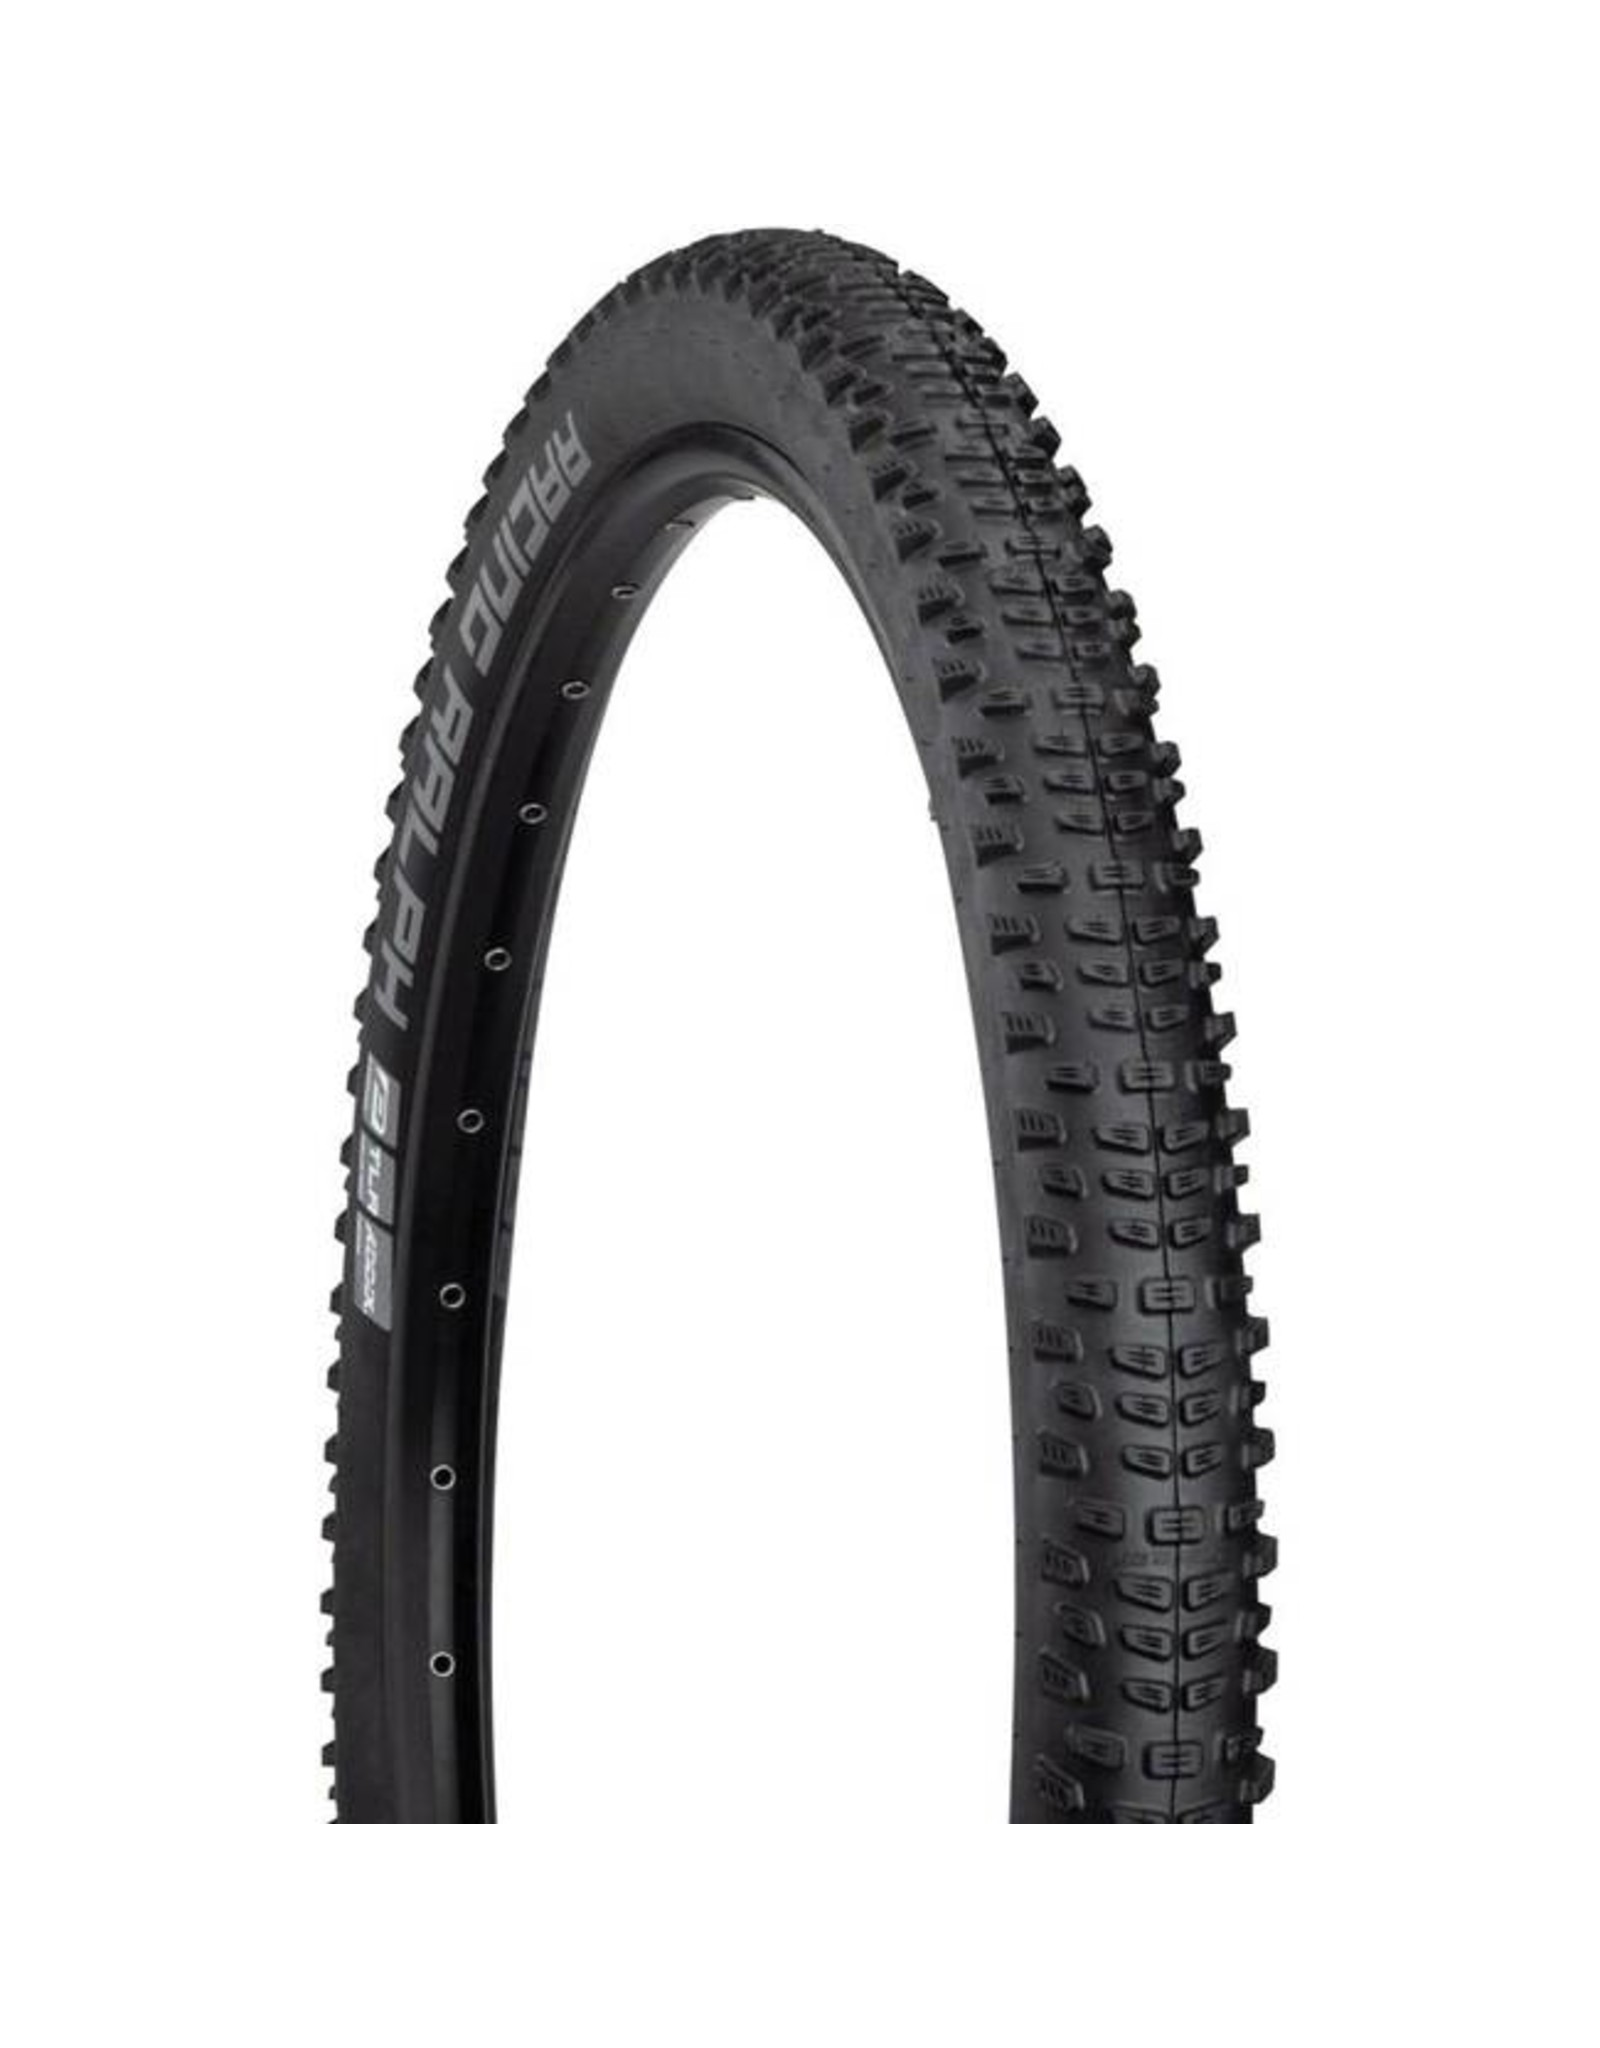 "Schwalbe Schwalbe Racing Ralph Tire: 27.5 x 2.25"", Folding Bead, Performance Line, Addix Performance Compound, TwinSkin, Tubeless Ready, Blac k"